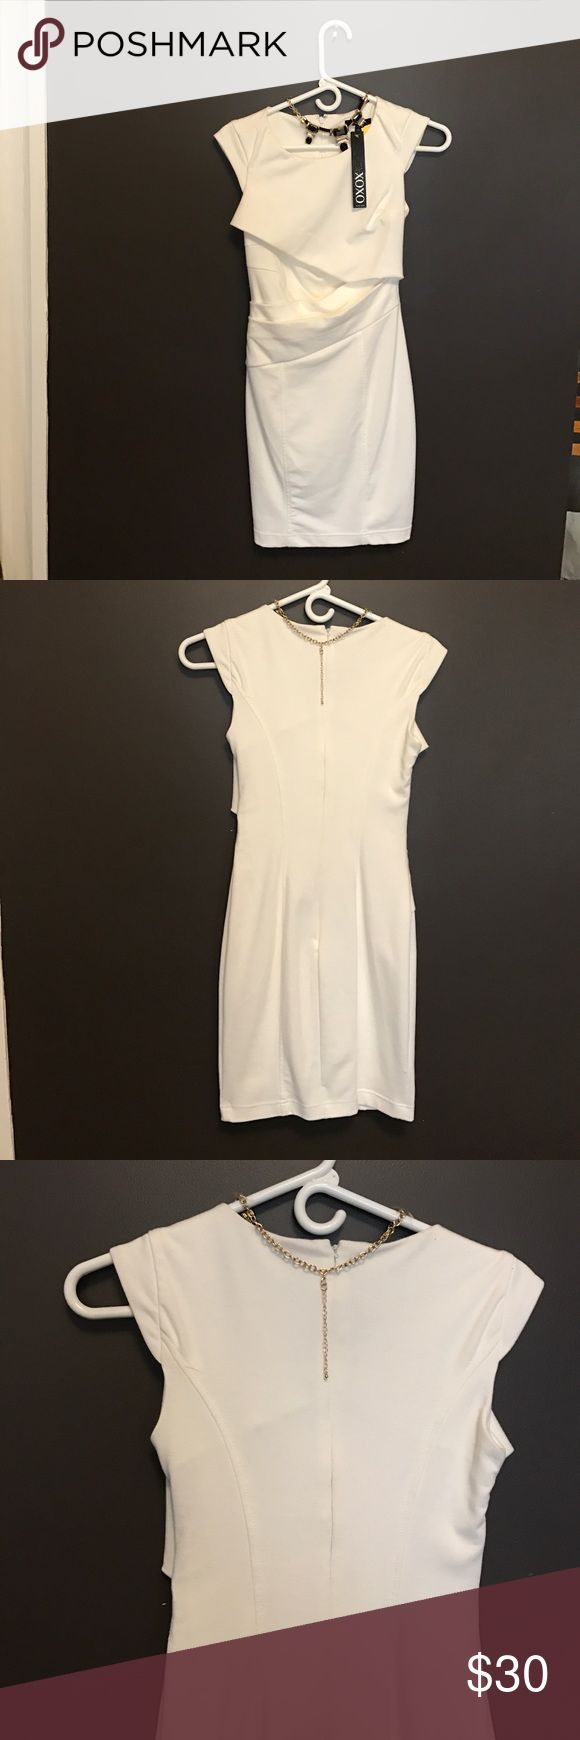 Sexy White Bodycon Dress Flattering and curve hugging! Size 1/2 by XOXO. NWOT but price sticker has been removed. Perfect for a night out! Dresses